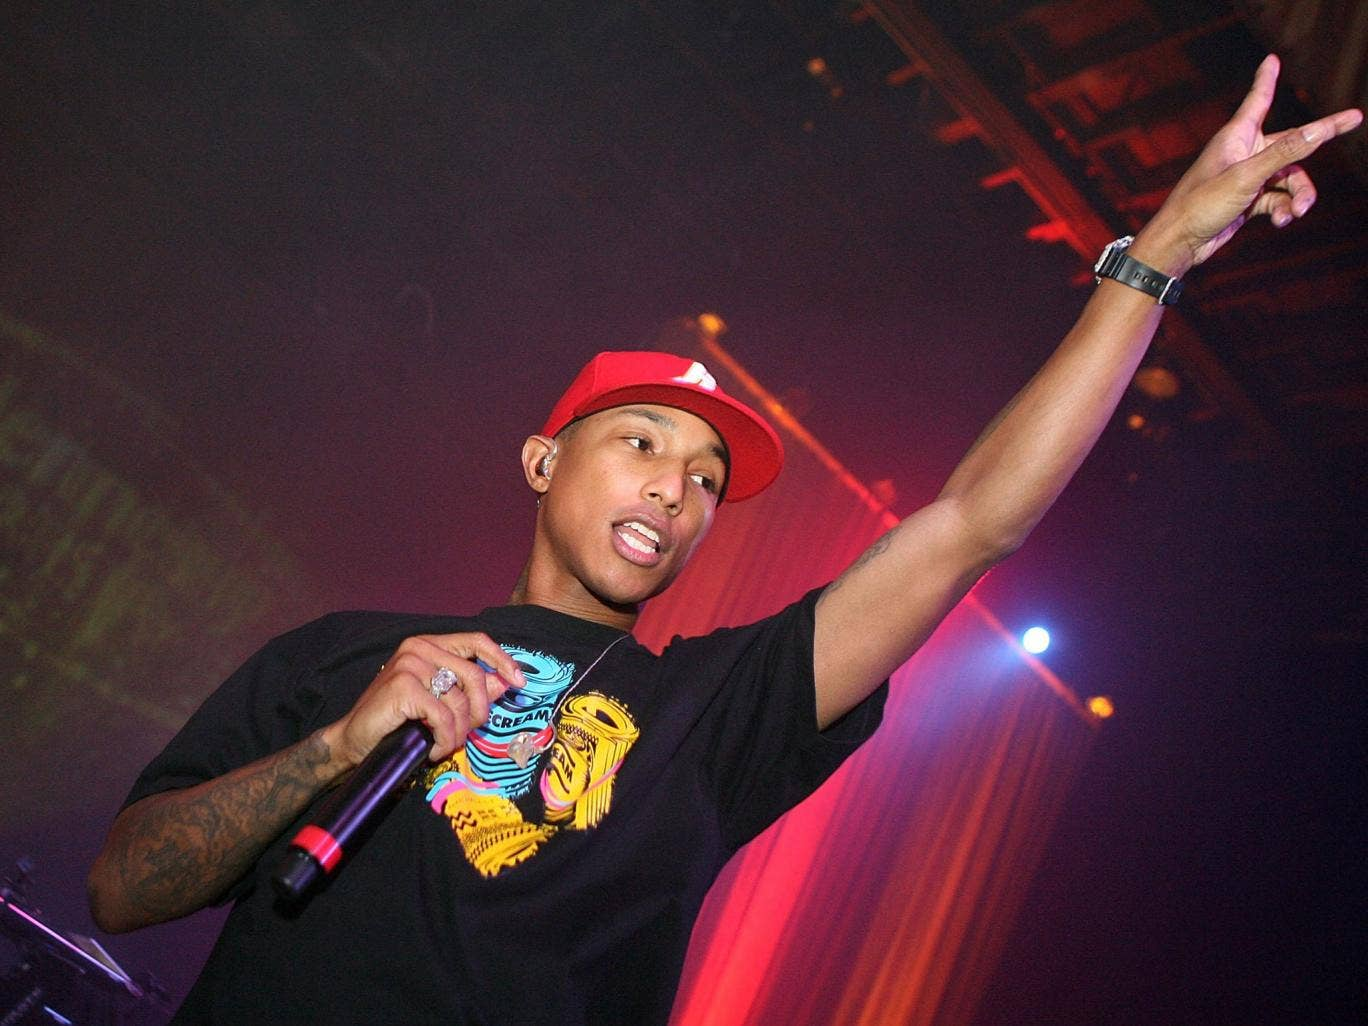 Pharrell Williams will perform alongside the likes of Katy Perry and Rudimental at the Brit Awards 2014